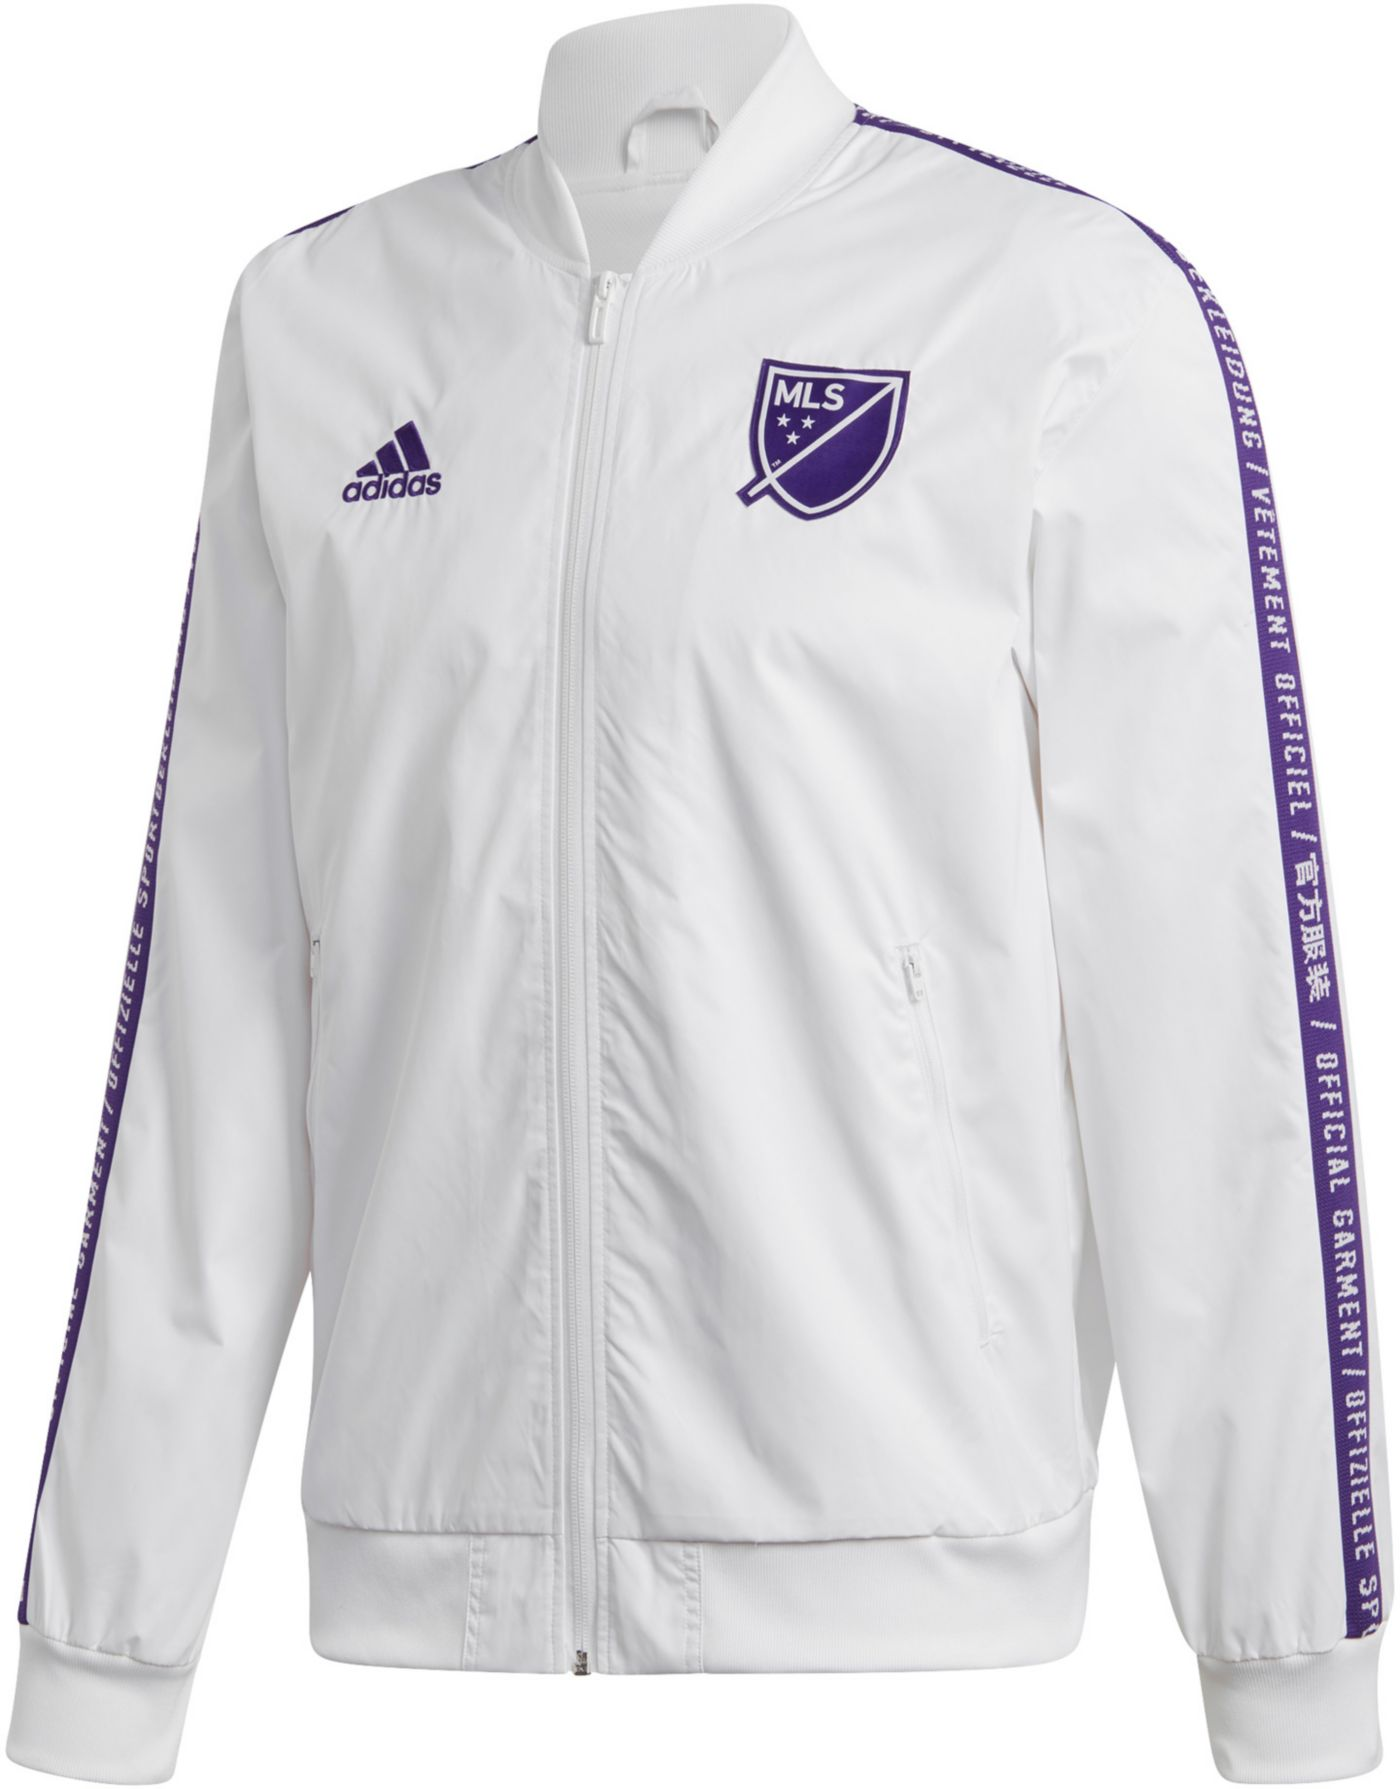 adidas Men's 2019 MLS All-Star Game MLS Anthem White Full-Zip Jacket